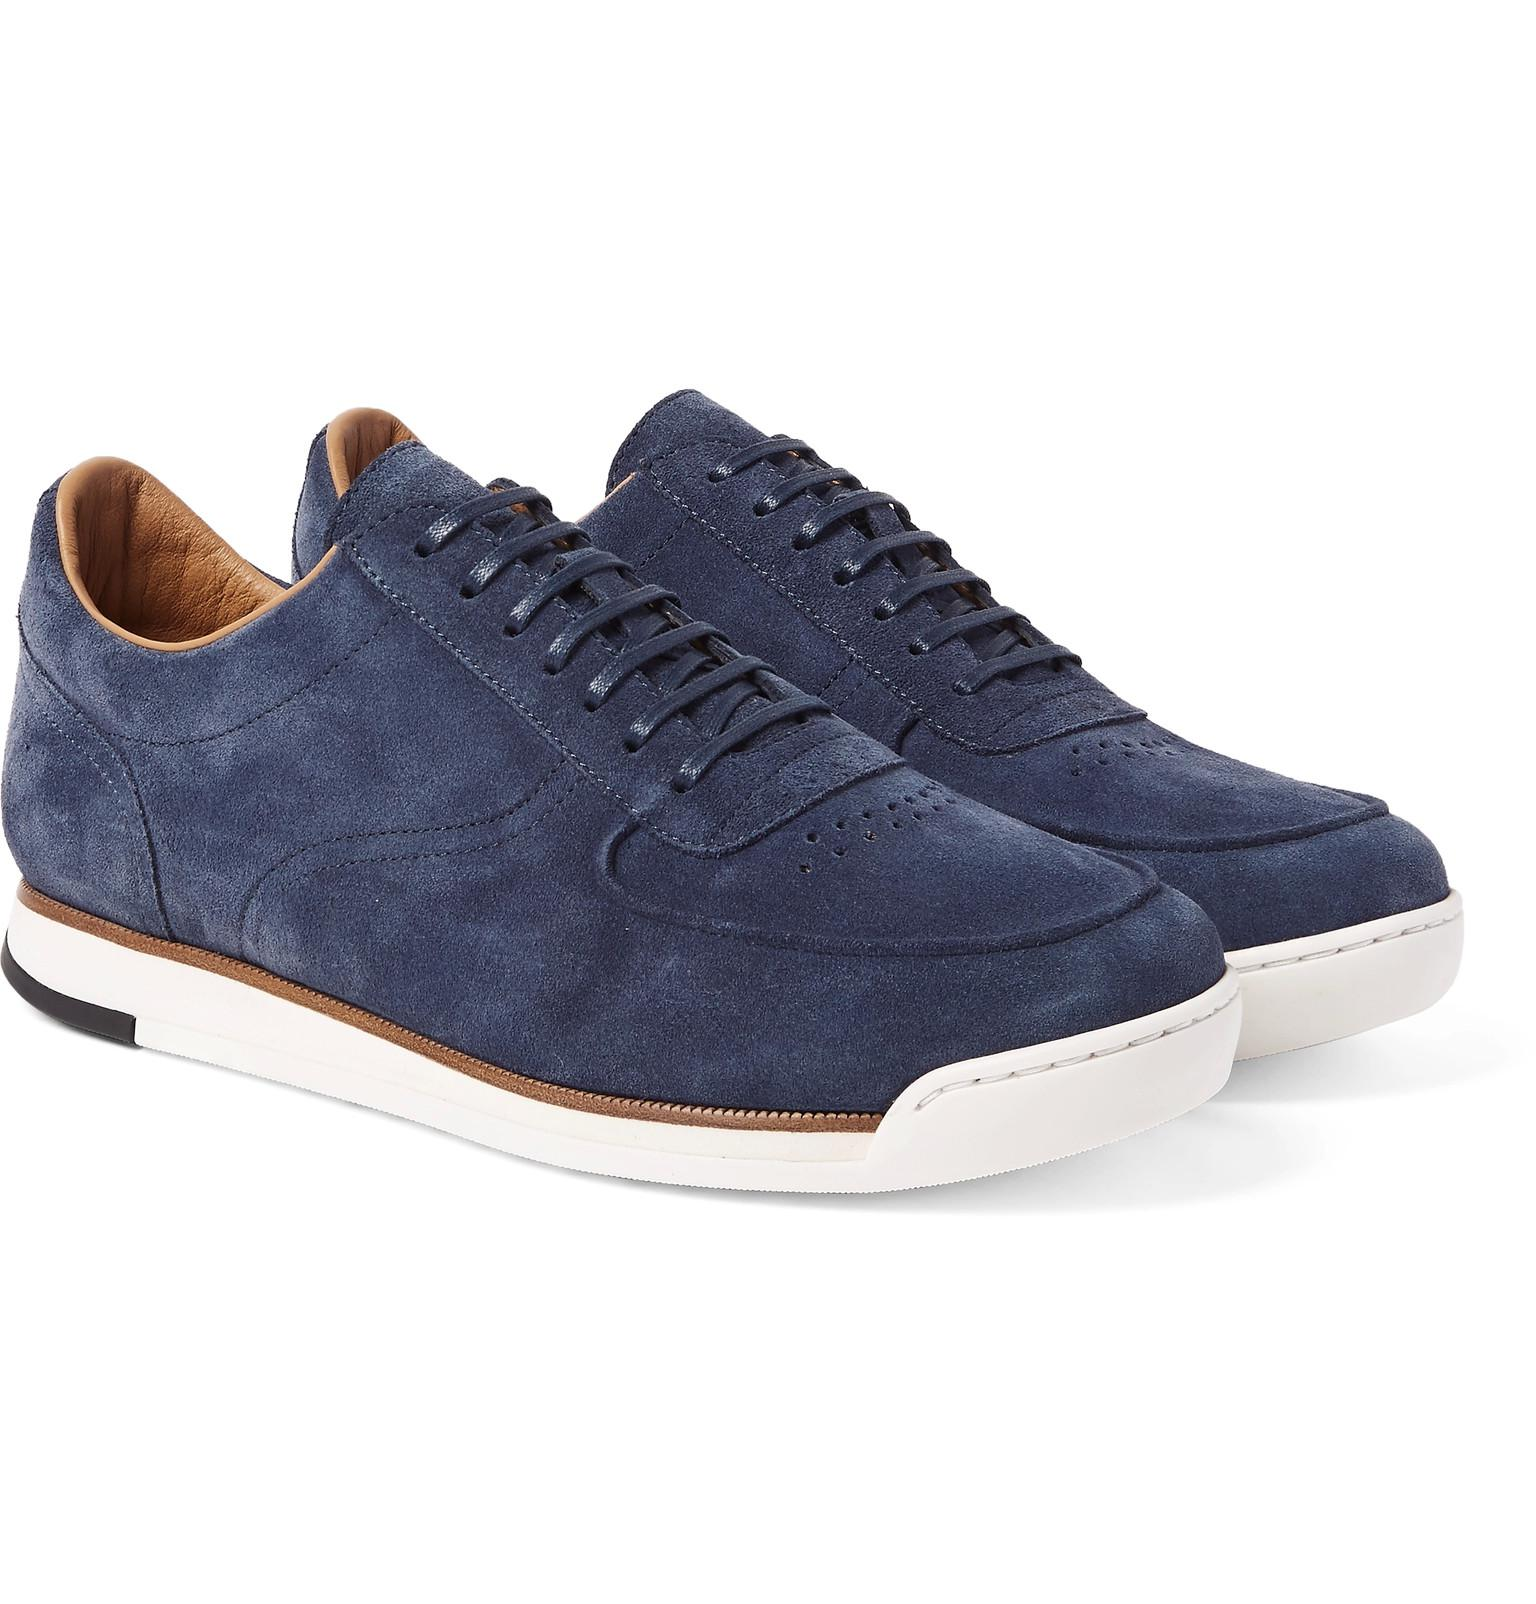 Porth low-top leather and suede trainers John Lobb 8AkCCg